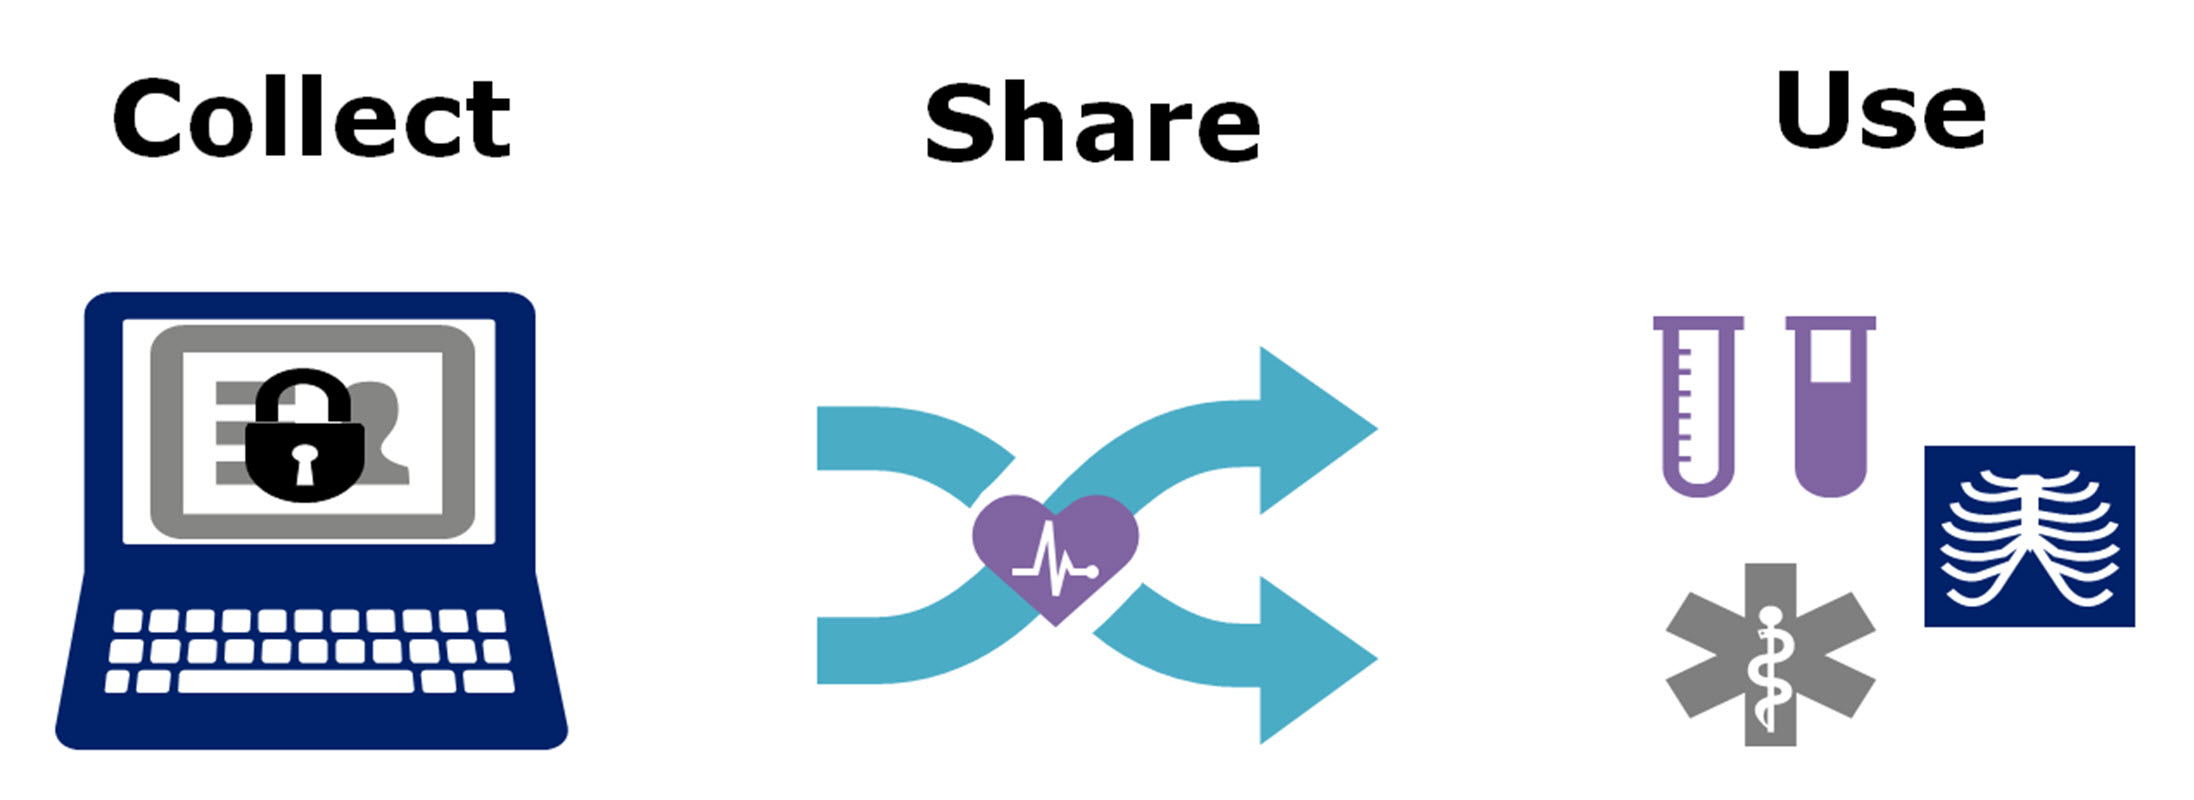 eHealth Collect Share Use